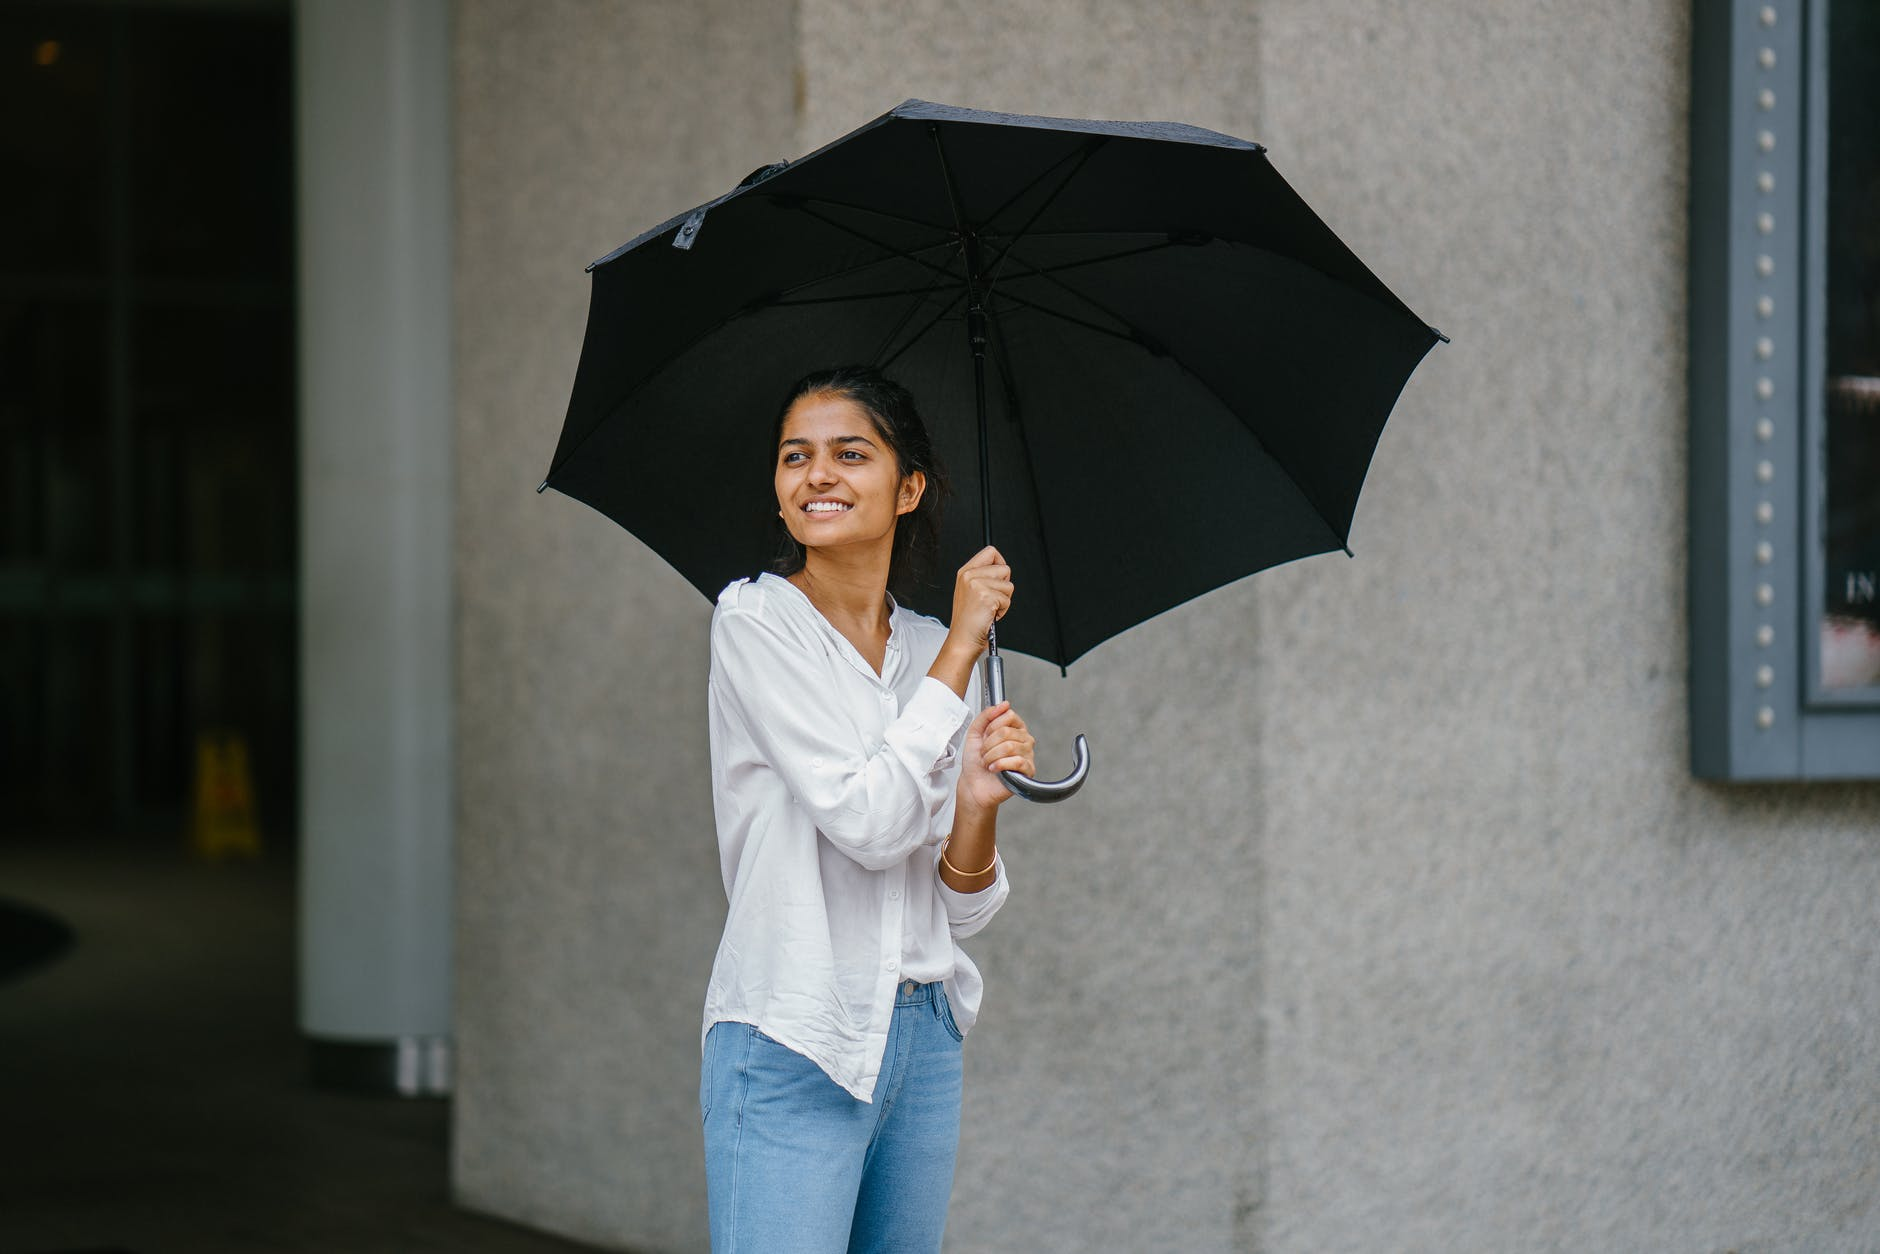 photo of woman wearing white long sleeved shirt and blue jeans holding black umbrella